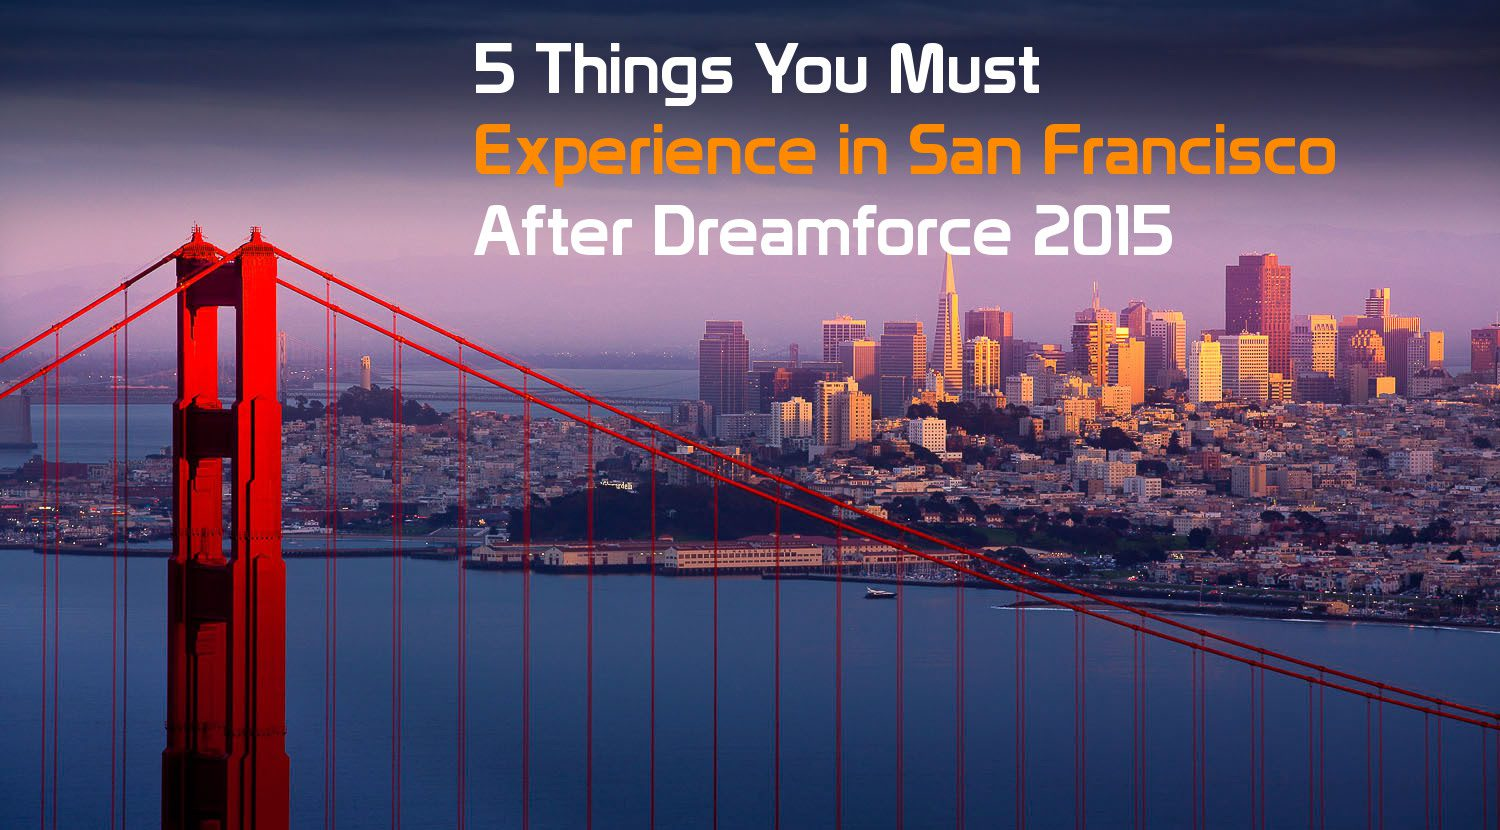 5 Things You Must Experience in San Francisco After Dreamforce 2015